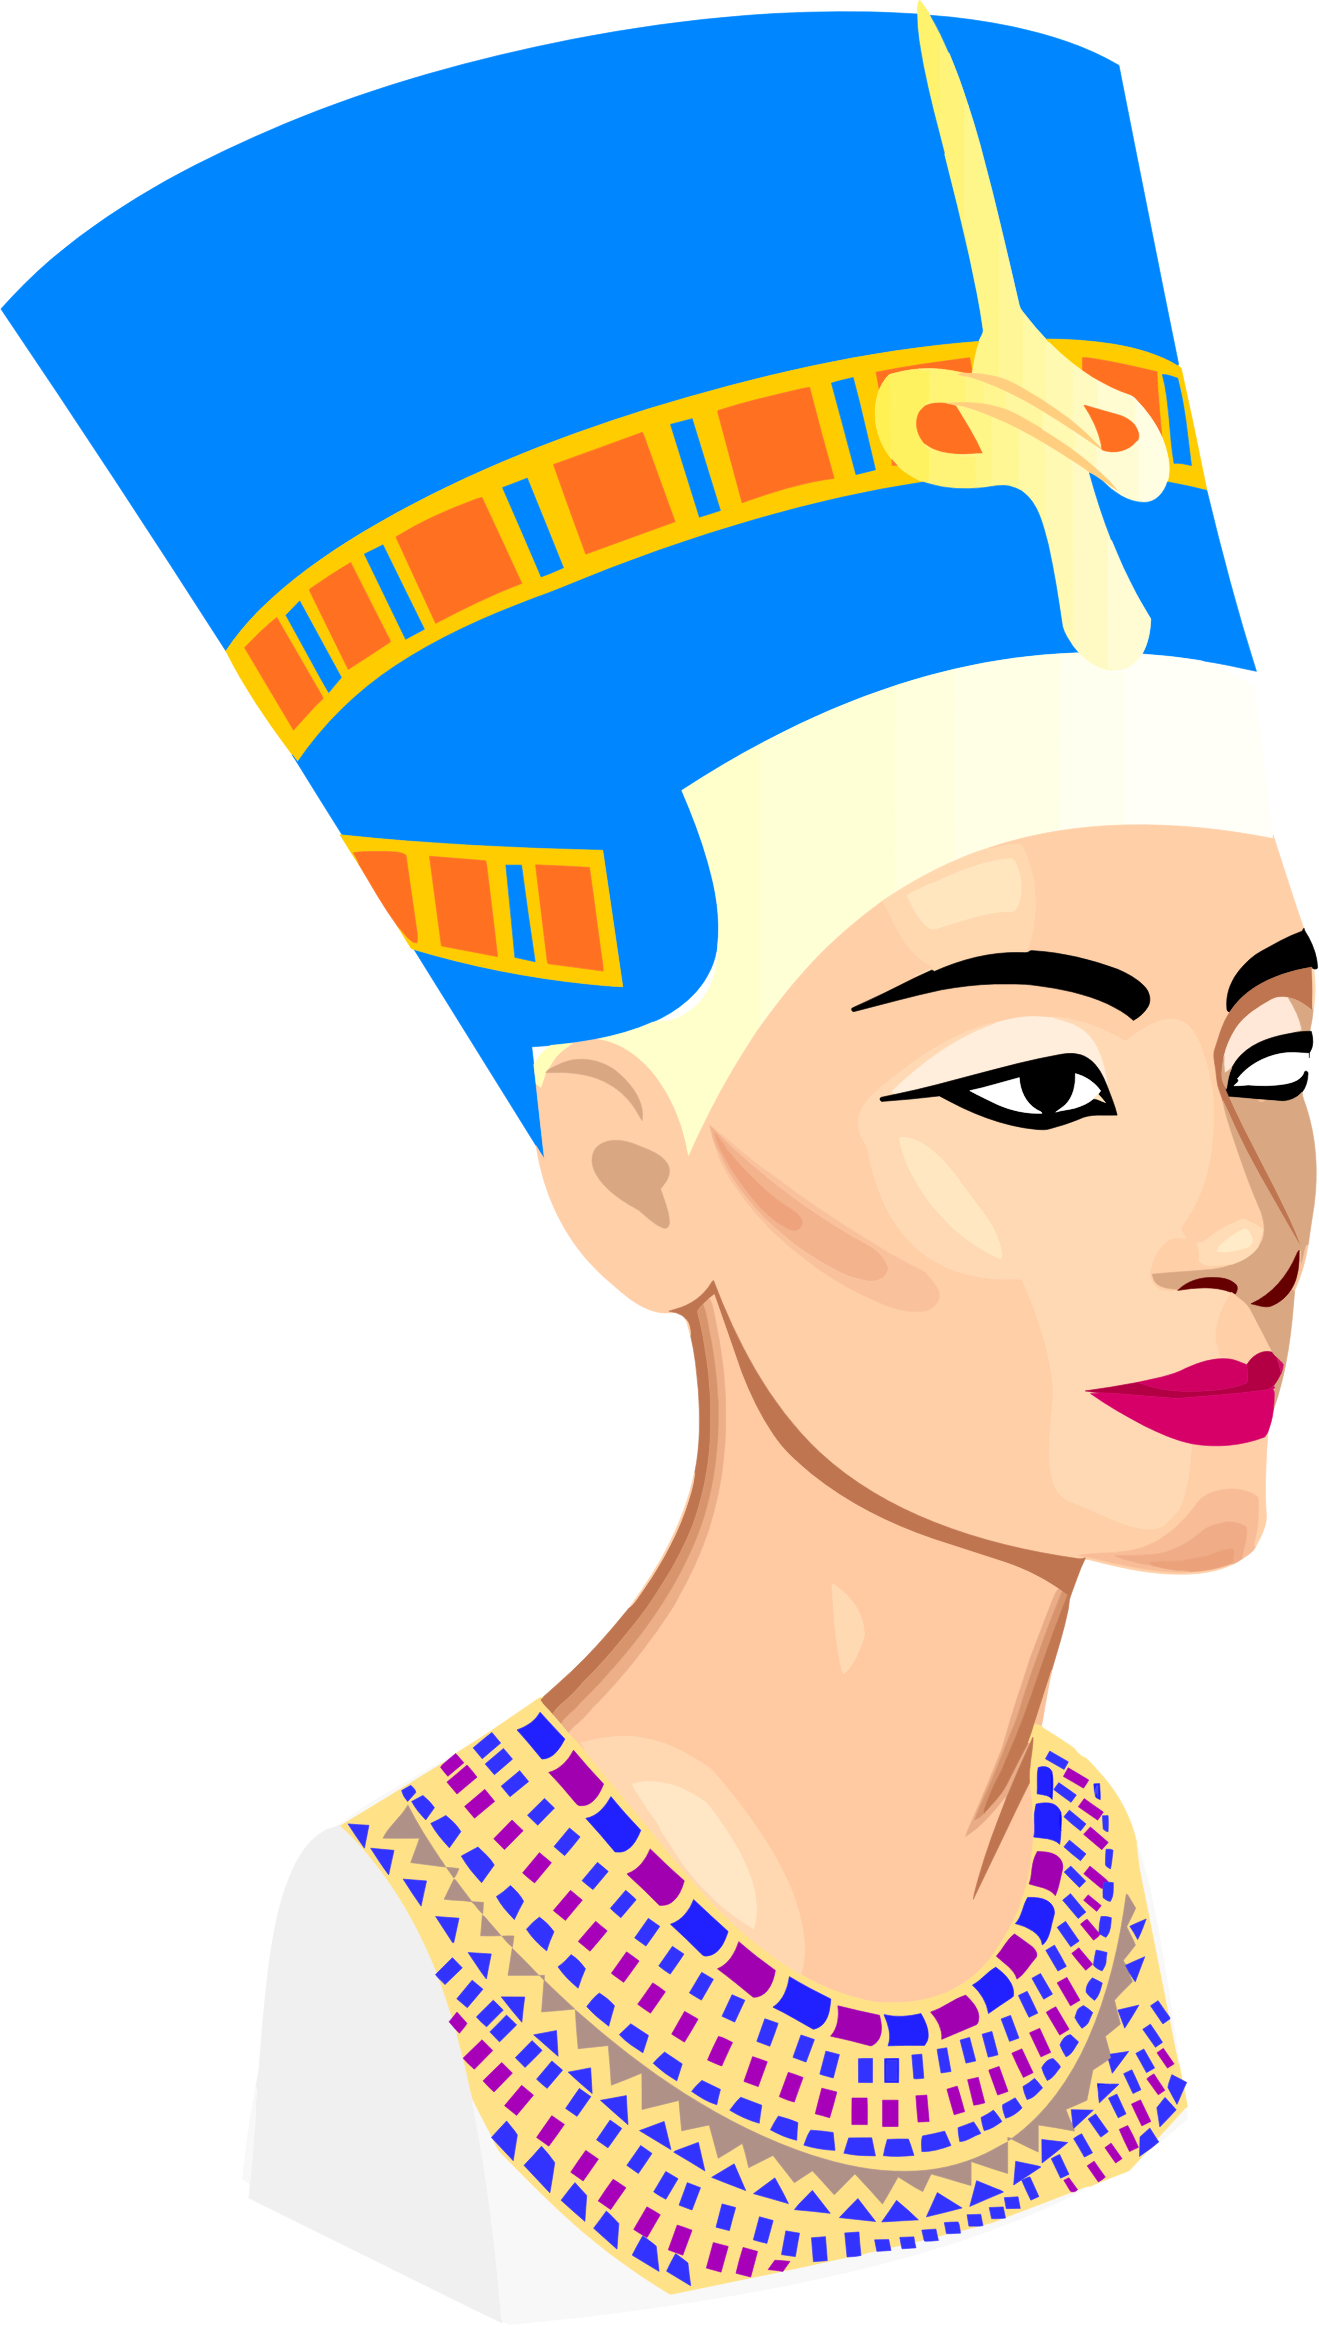 Nefertiti Portrait by GDJ